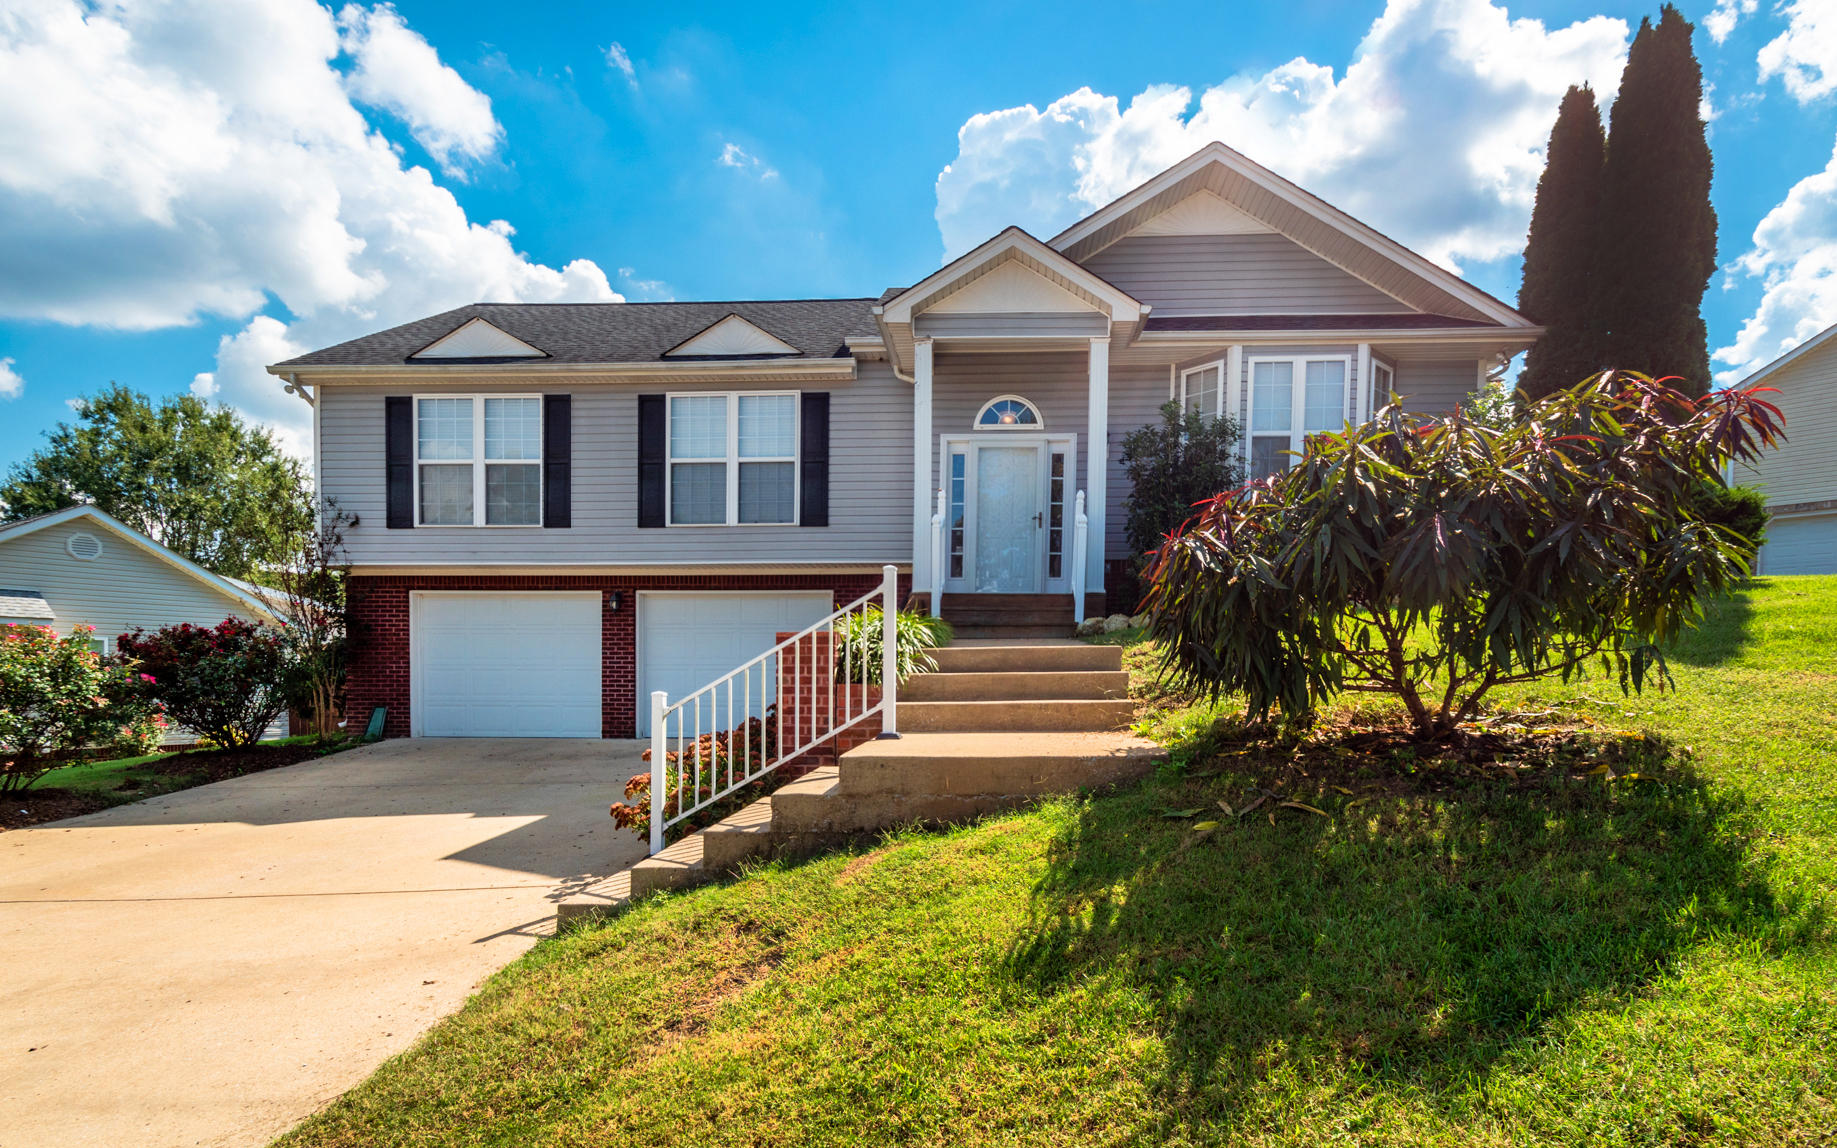 6144 Veronica Dr, Ooltewah, TN 37363